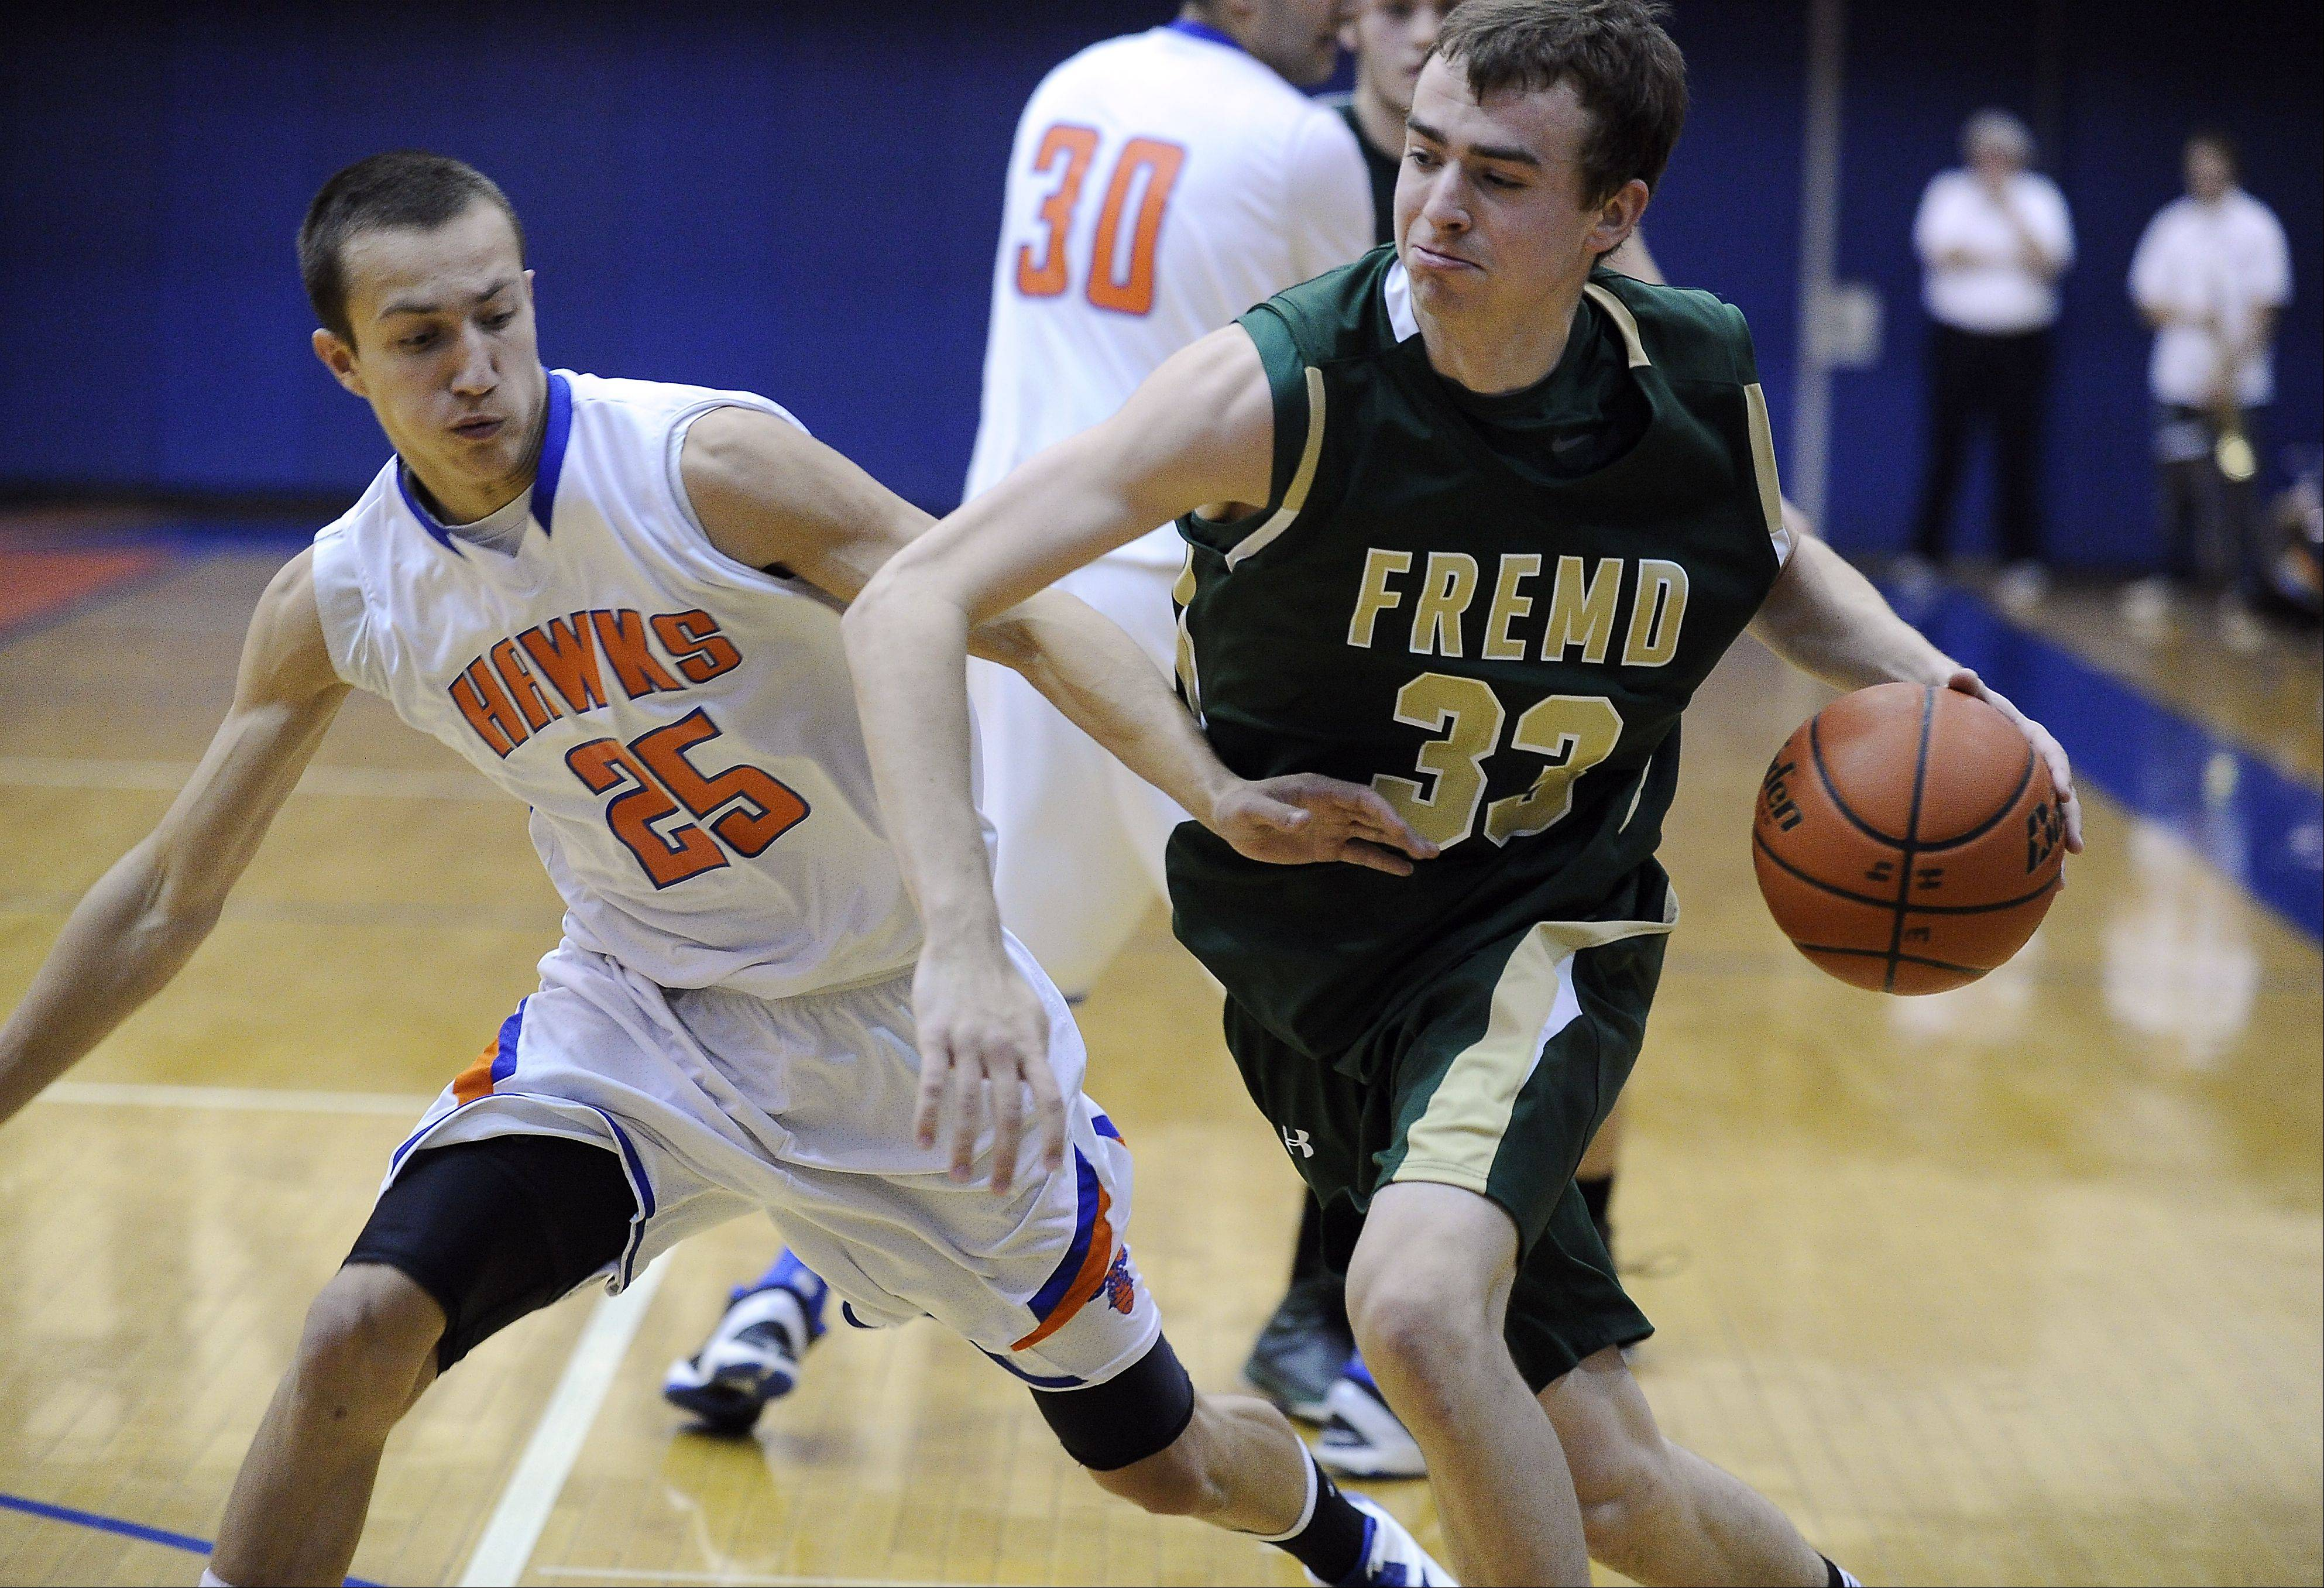 Fremd�s Sean Benka drives around Hoffman�s Jimmy Ward in the third quarter Thursday at Hoffman Estates.